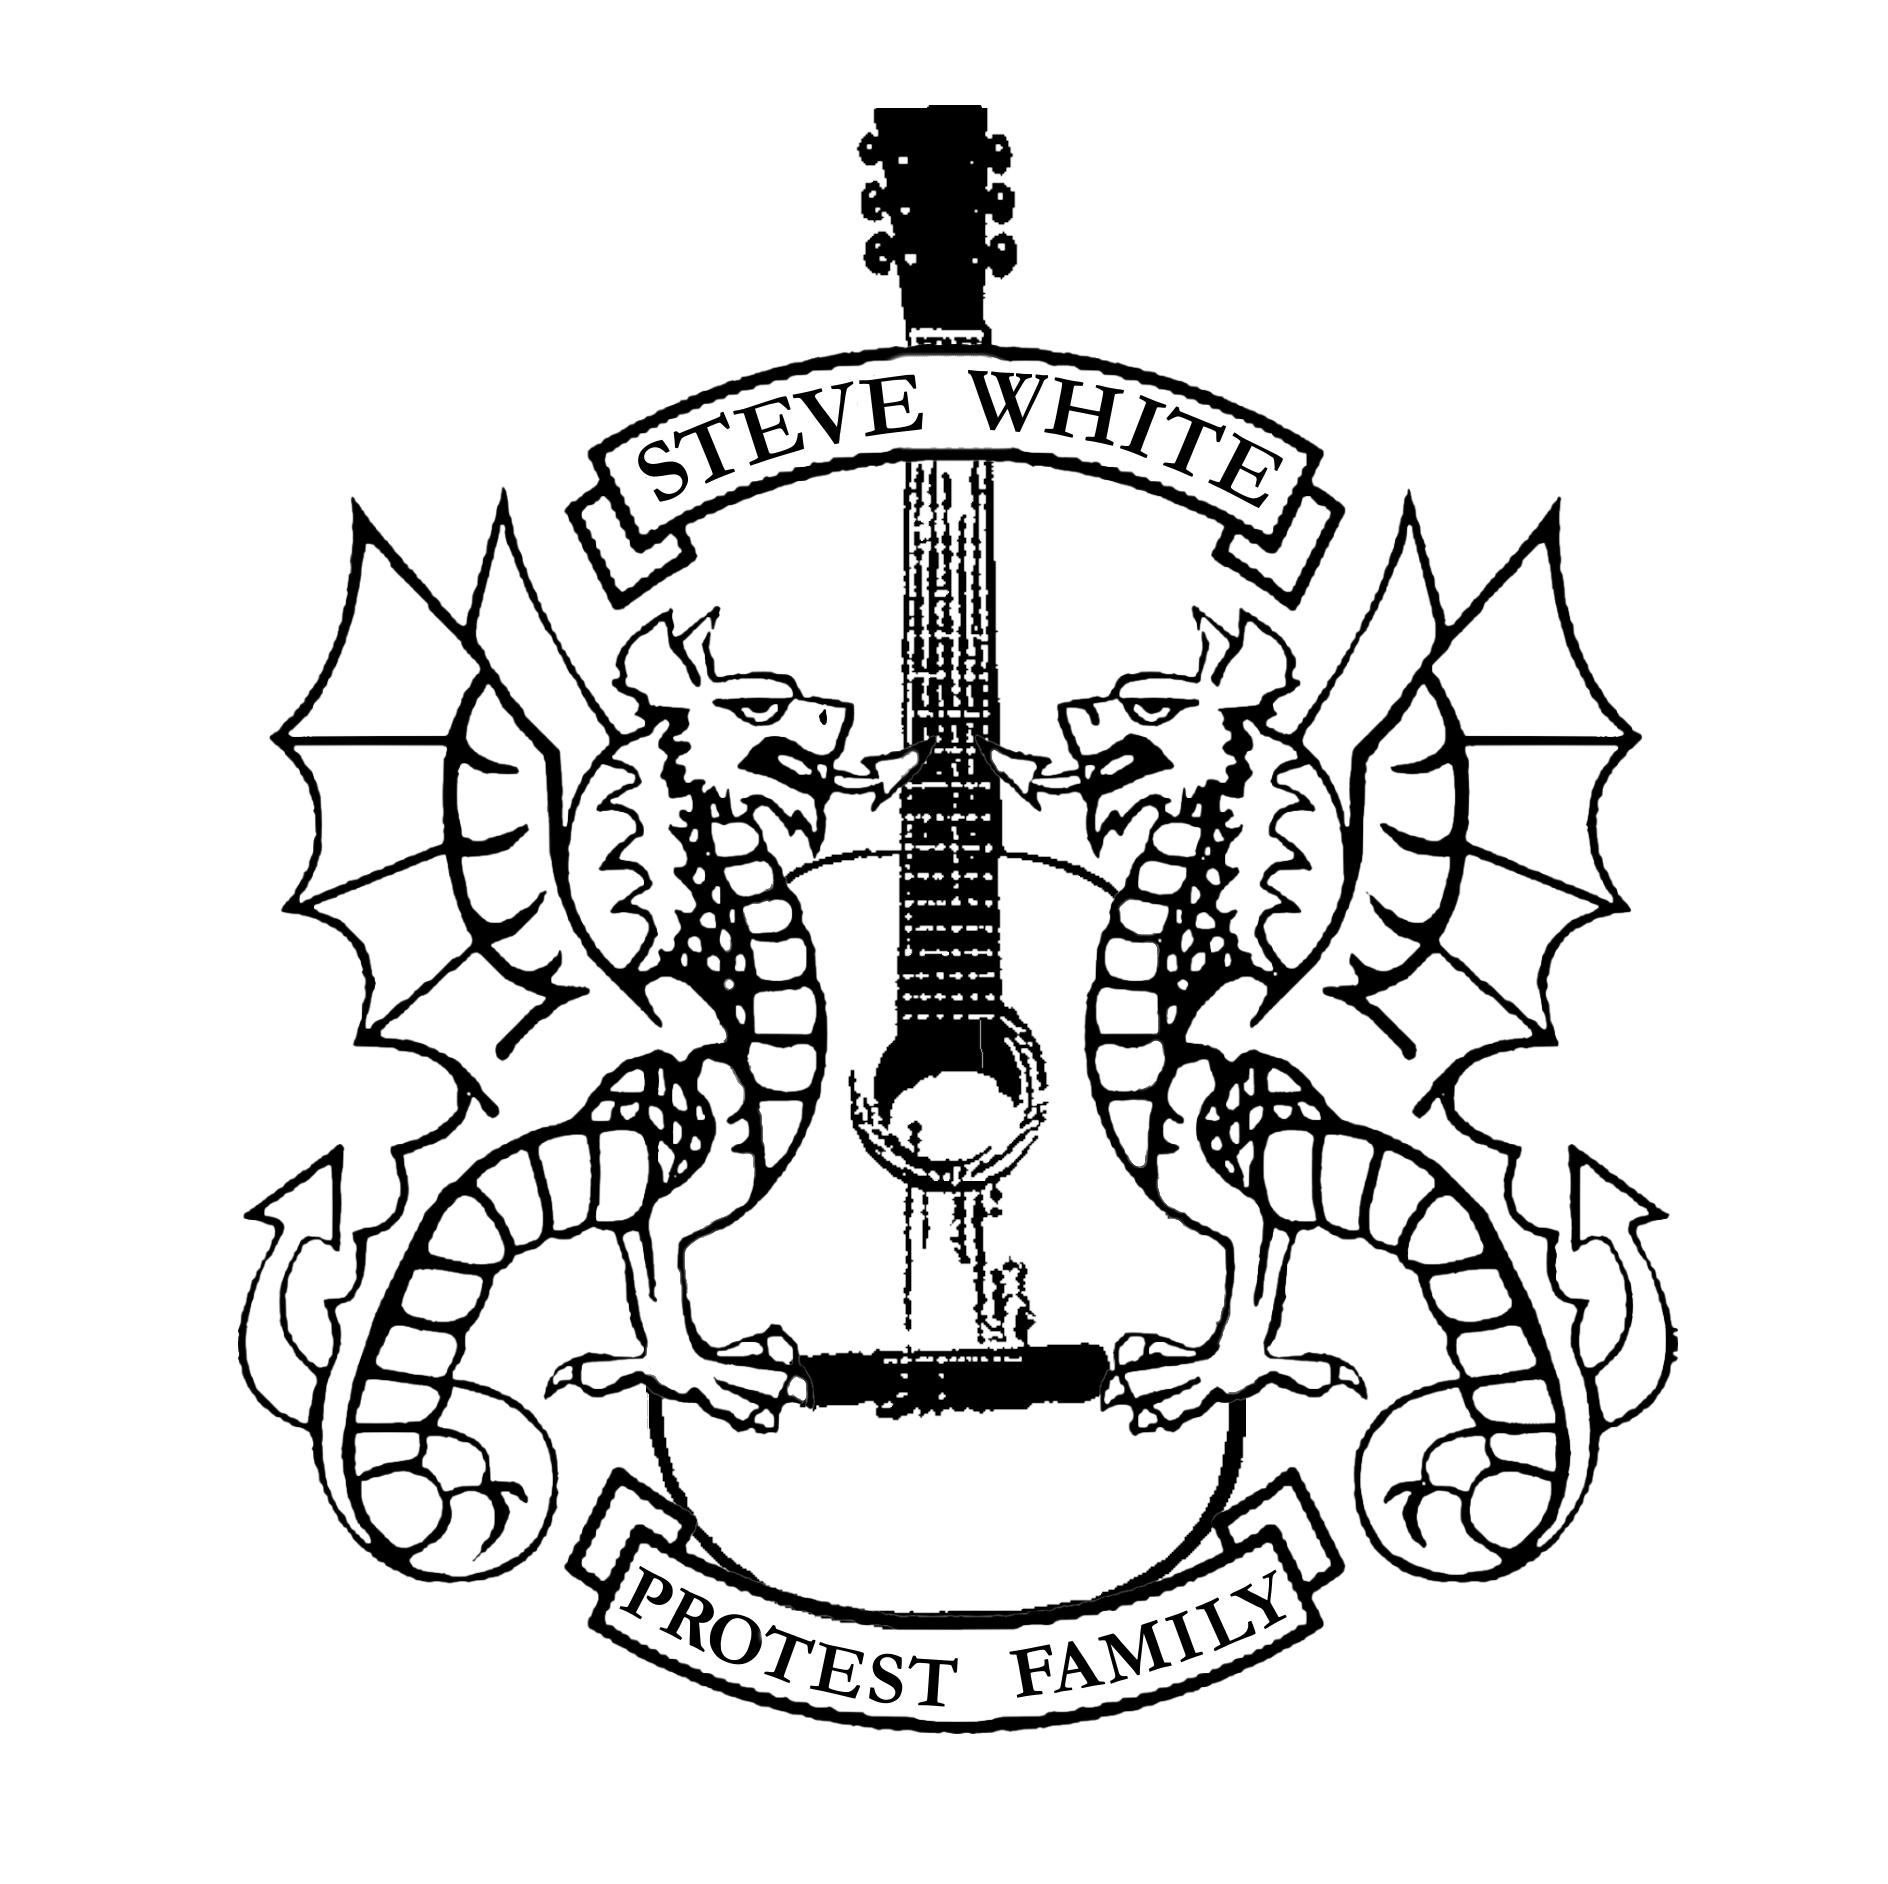 Steve White & The Protest Family